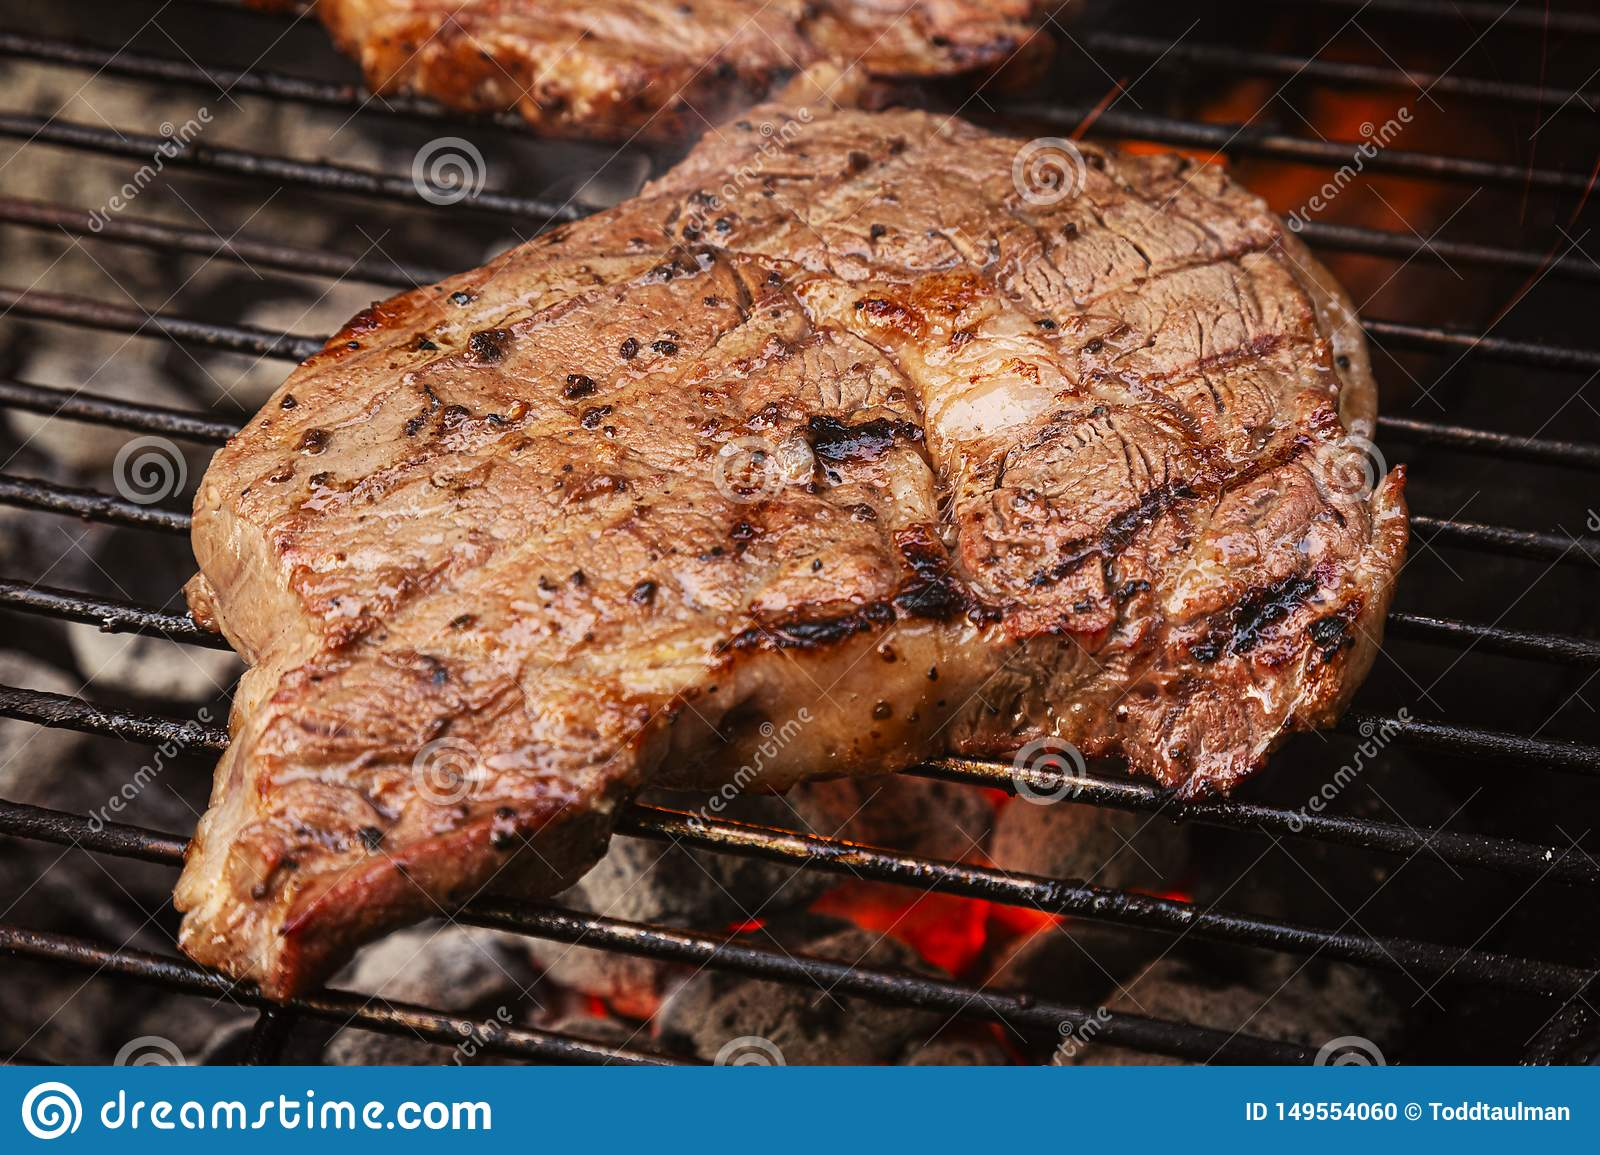 Rib Eye Steak On The Charcoal Grill Stock Photo Image Of Barbeque Fresh 149554060